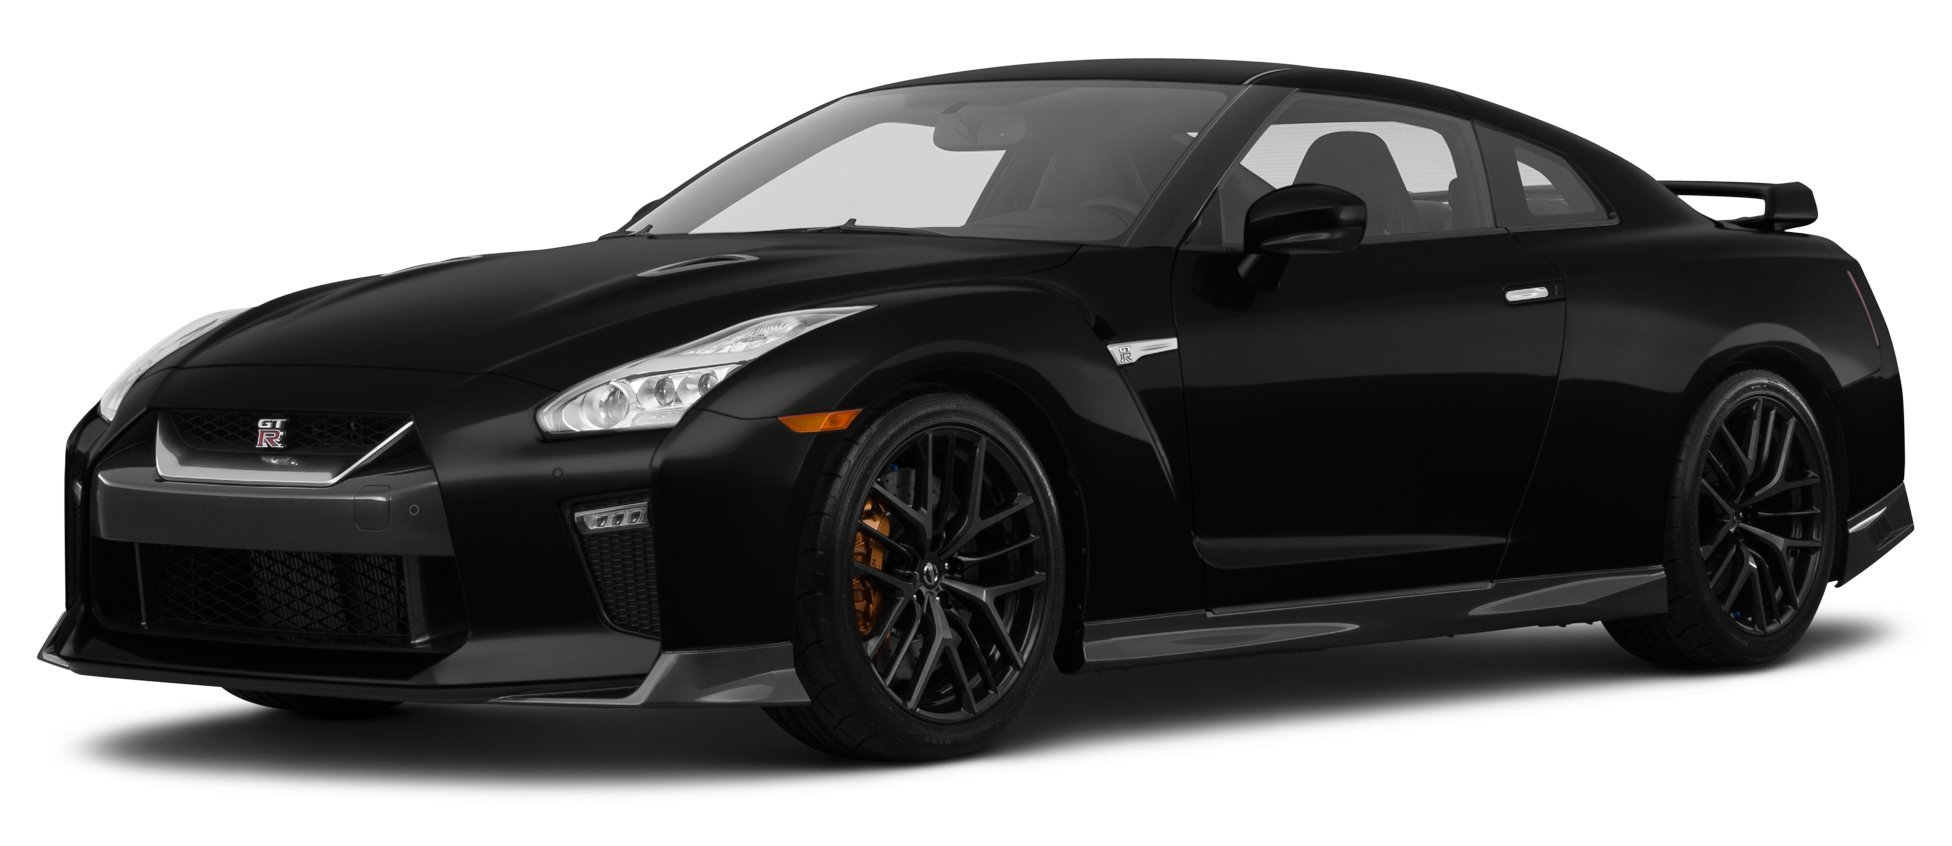 2017 nissan gt r reviews images and specs vehicles. Black Bedroom Furniture Sets. Home Design Ideas